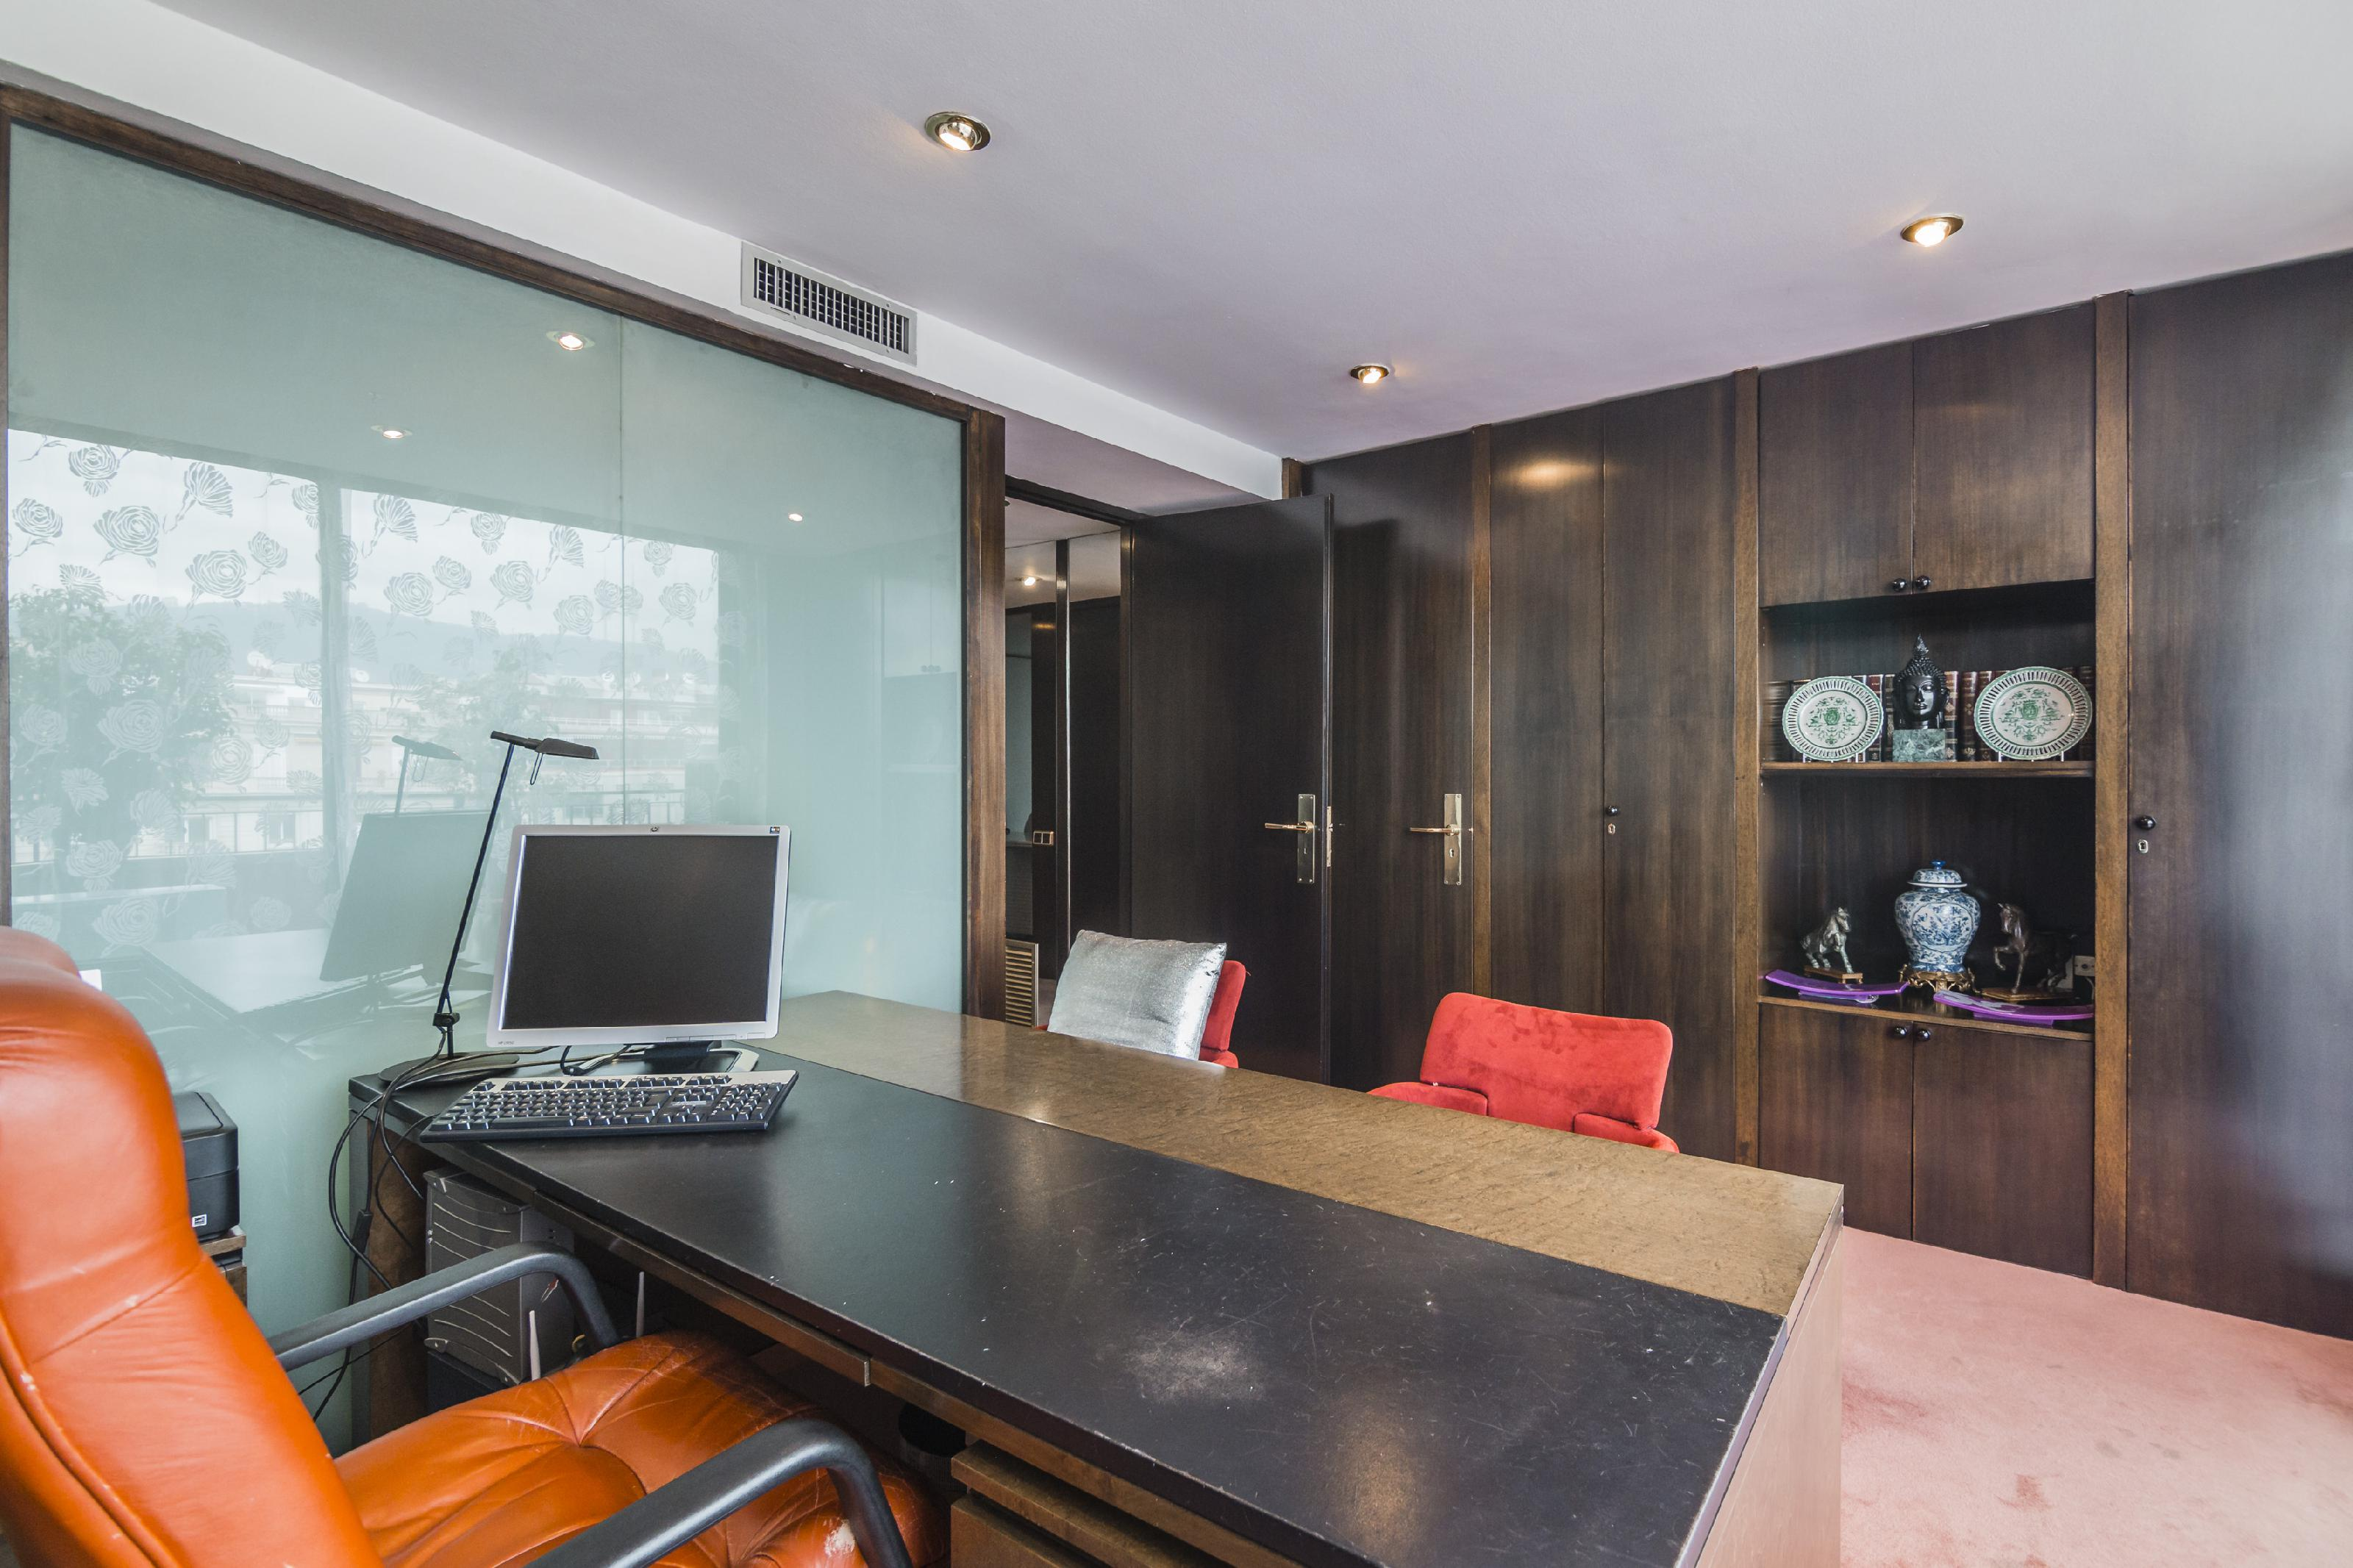 223855 Penthouse for sale in Sarrià-Sant Gervasi, Sant Gervasi-Galvany 9